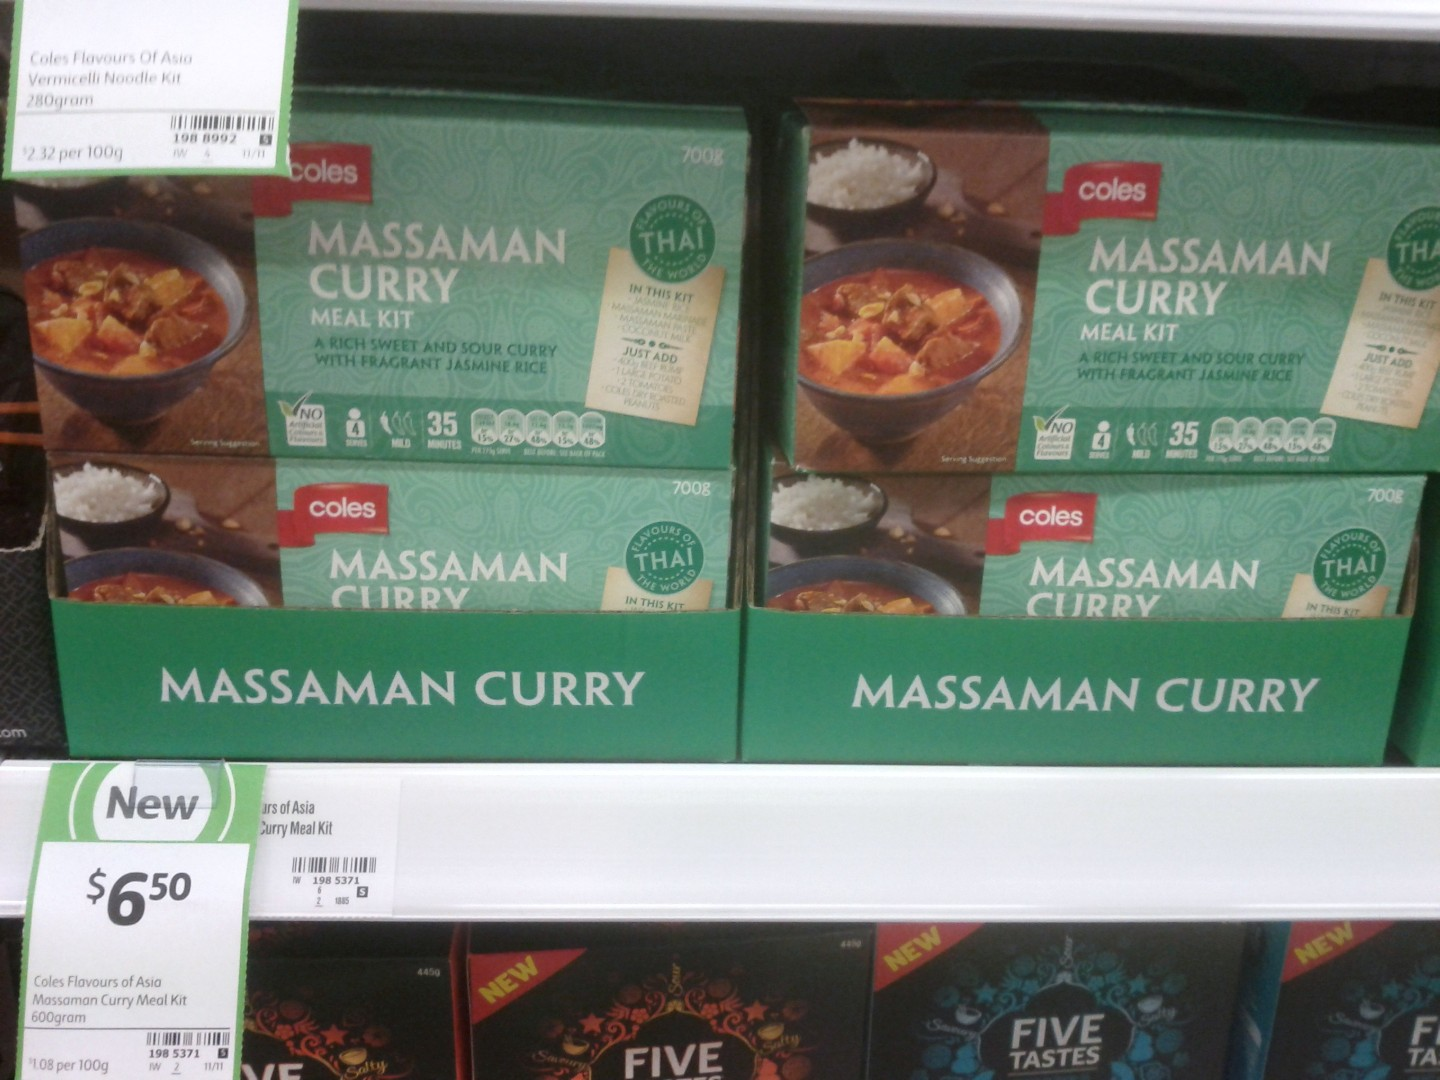 Coles 600g Massaman Curry Meal Kit